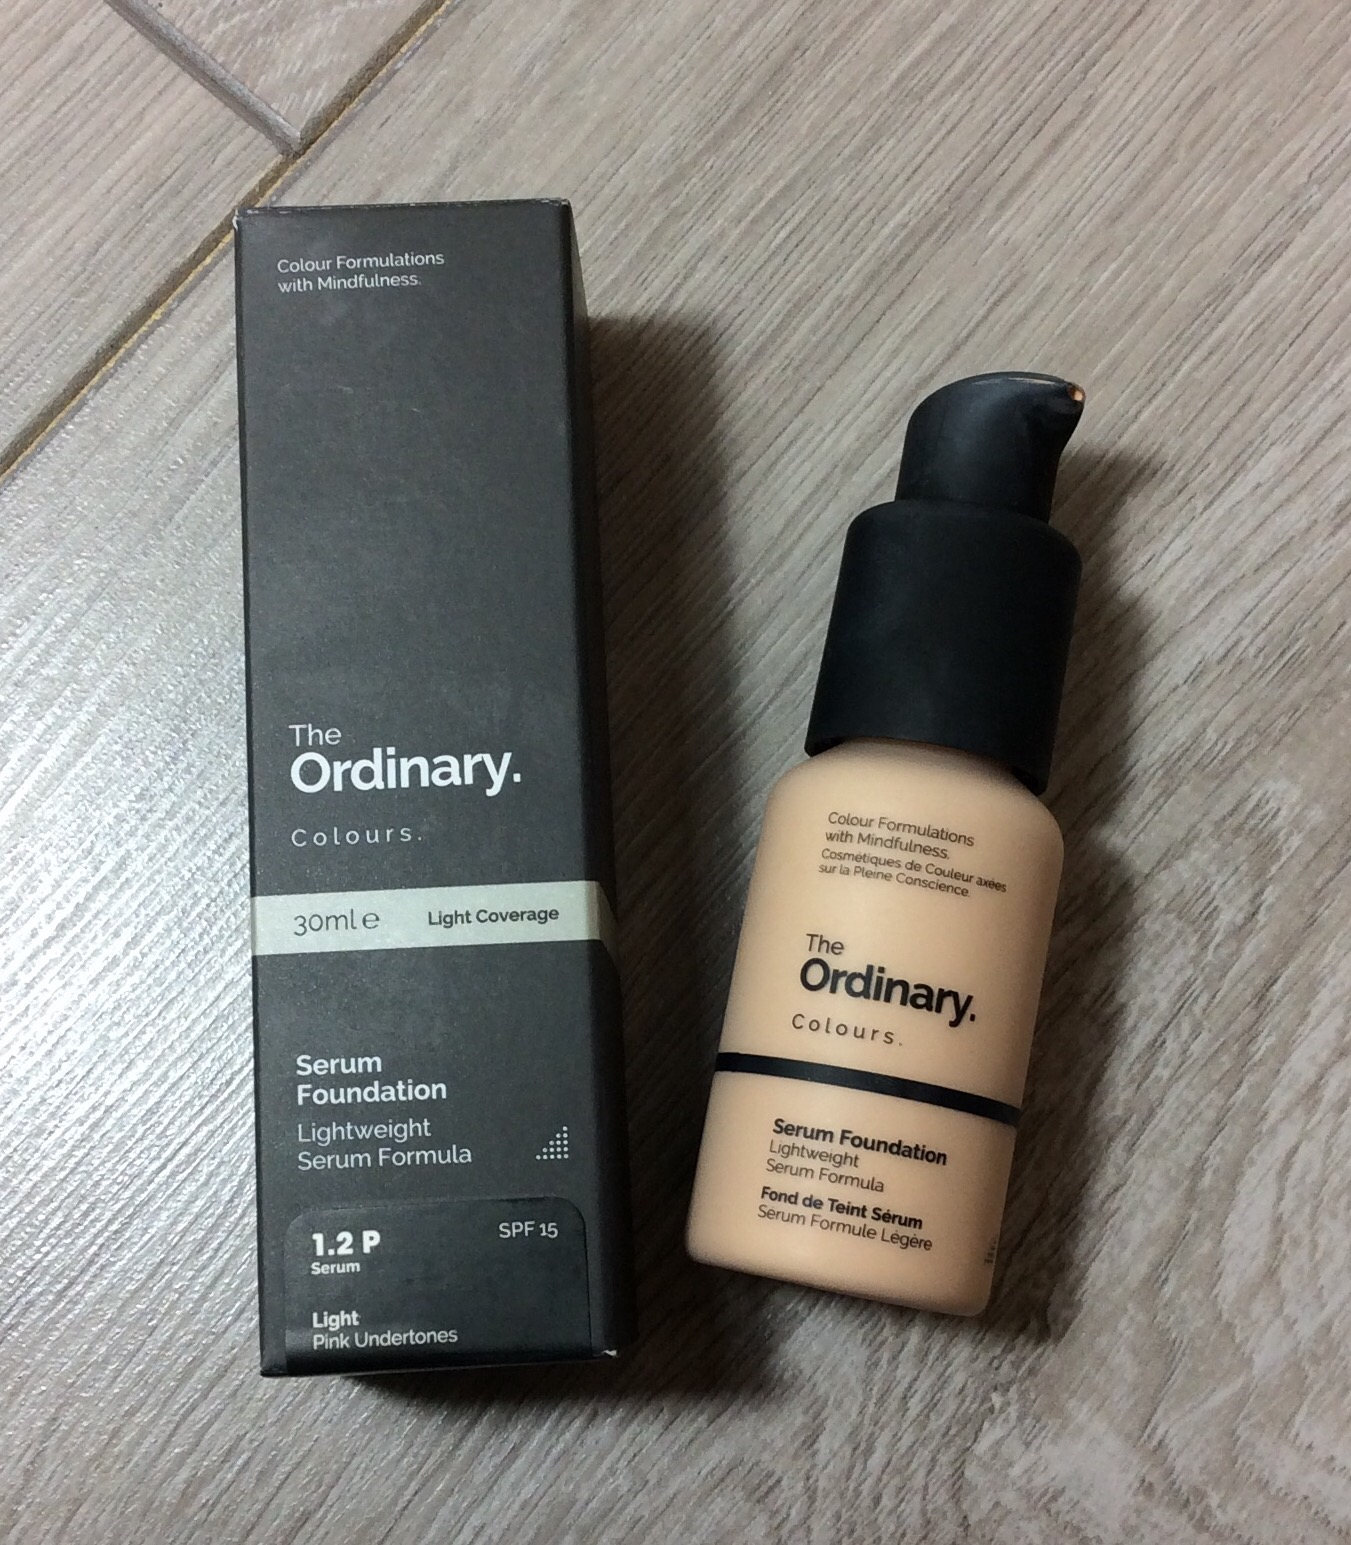 Review The Ordinary Serum Coverage Foundations Beauty Fashion Chit Chat